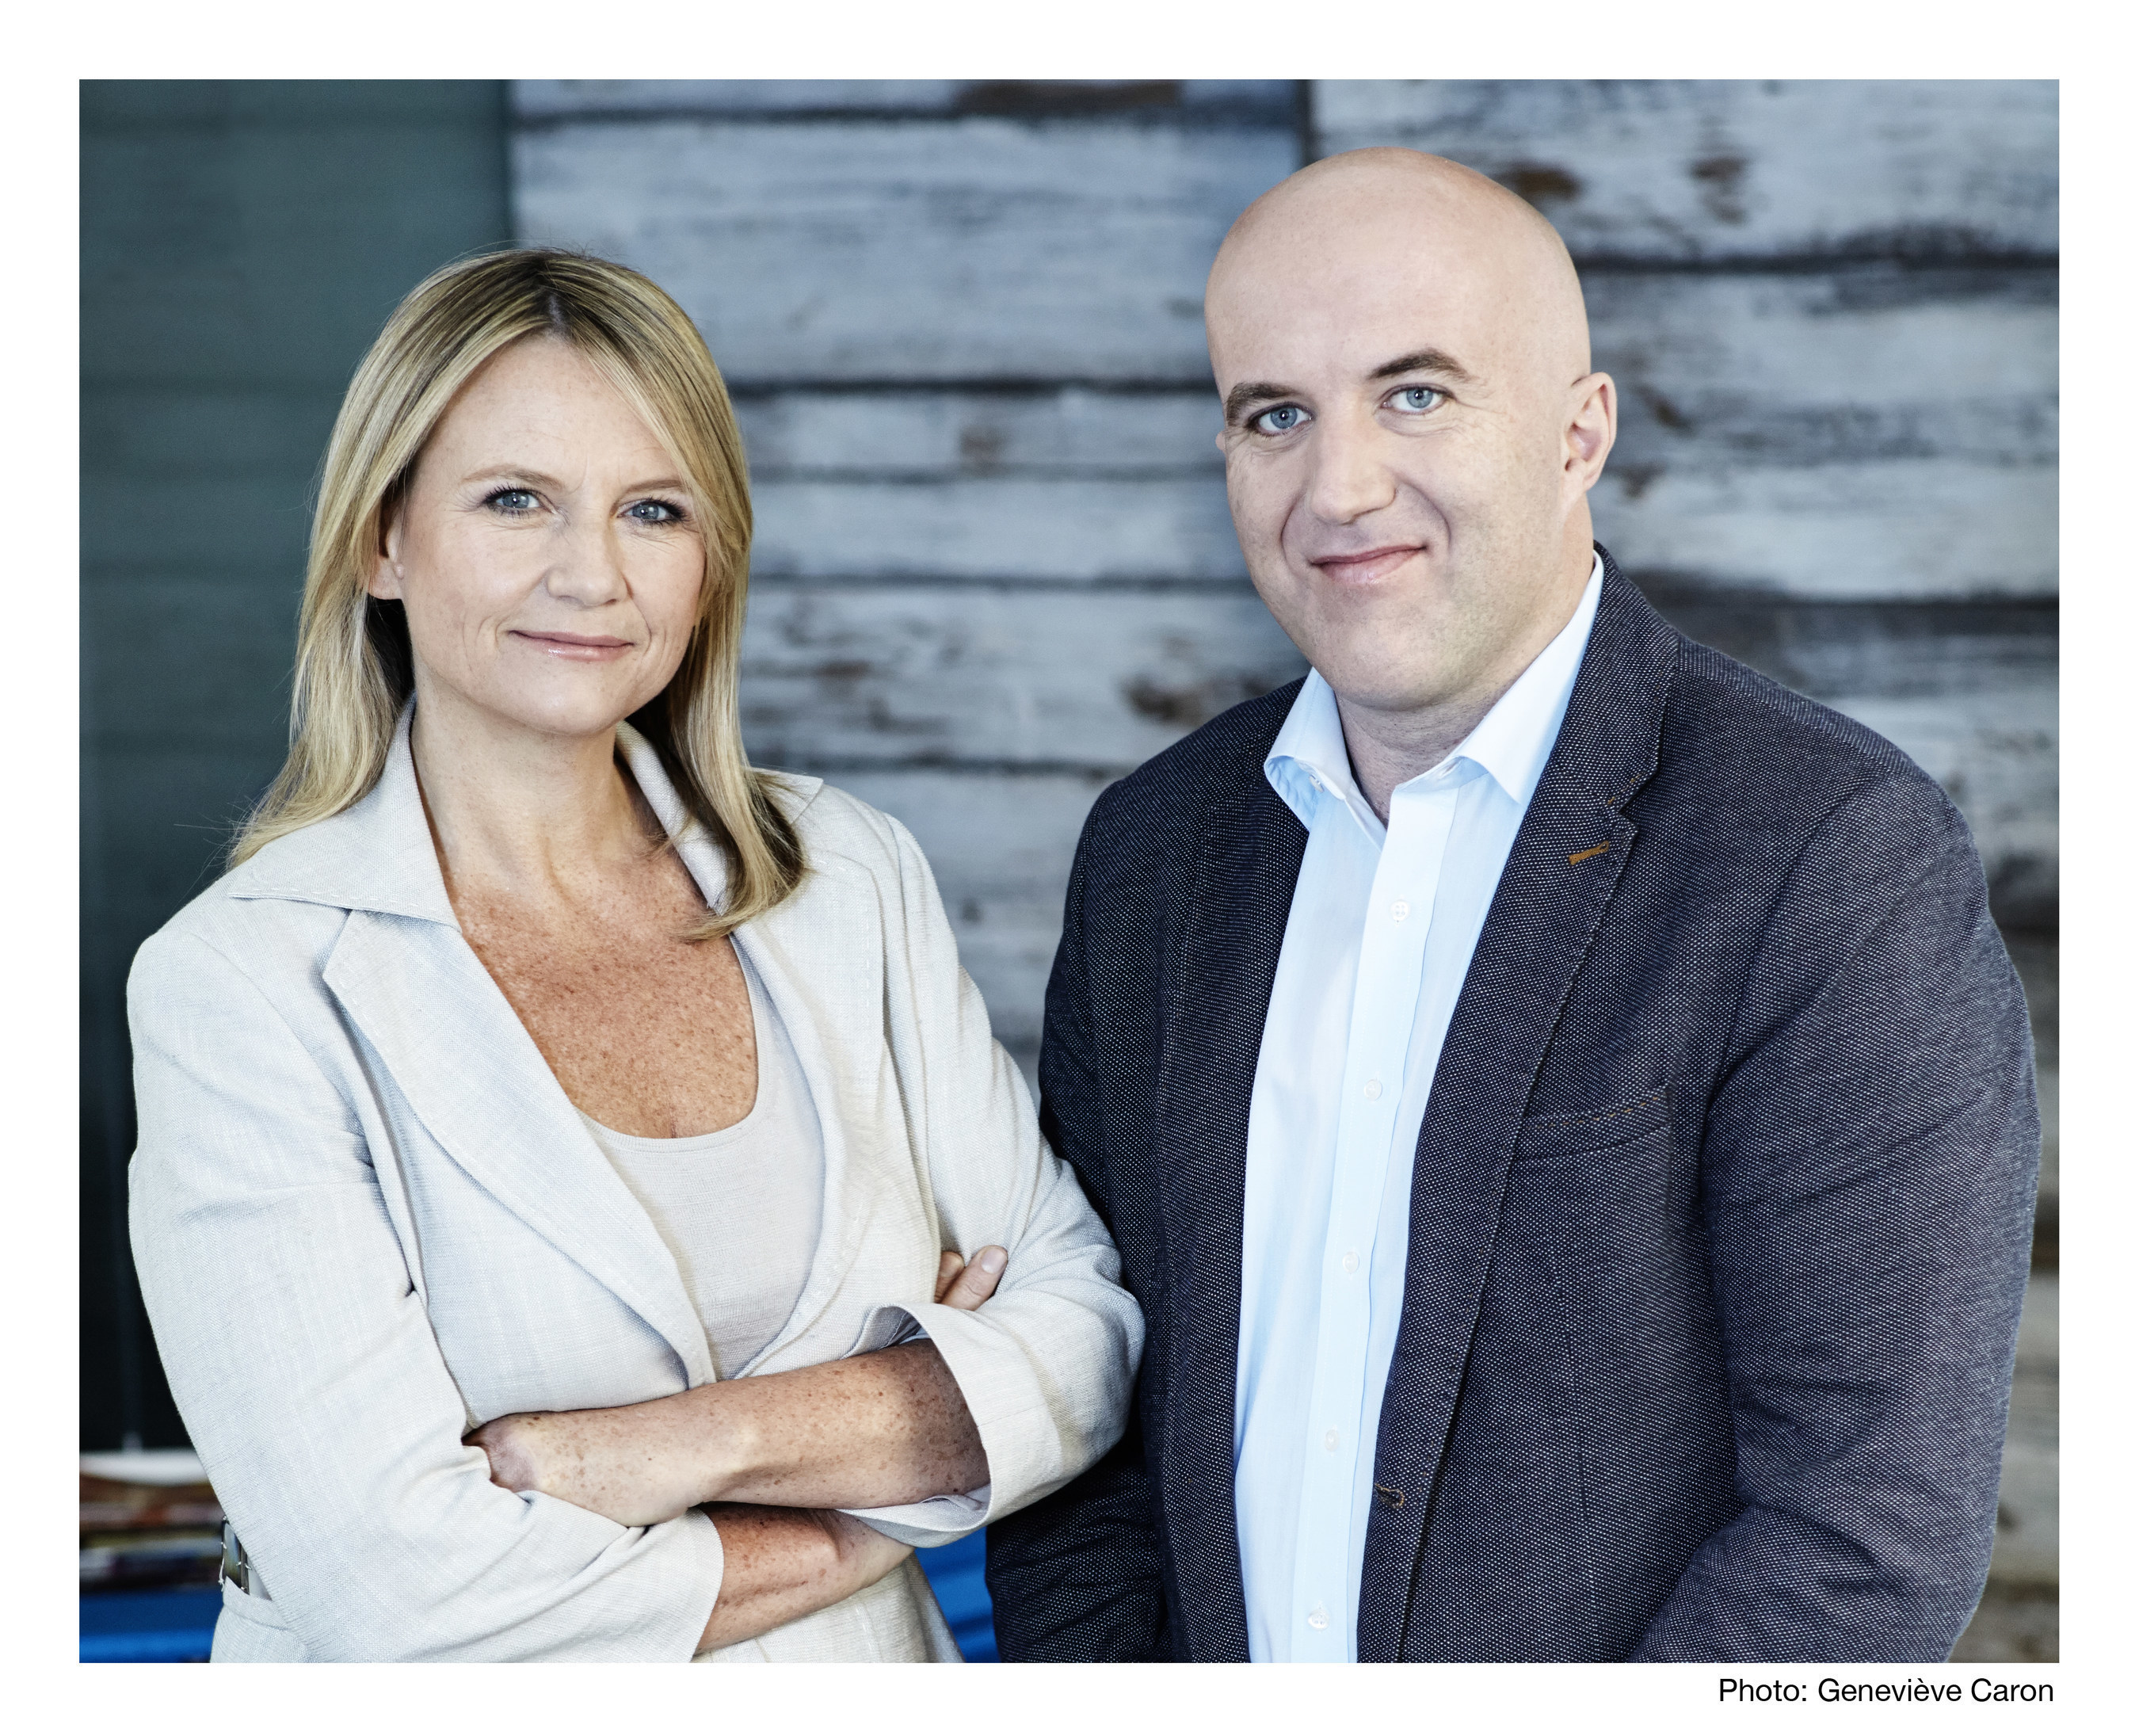 Mia Pearson and Justin Creally are the co-founders of North Strategic, acquired by MSLGROUP.